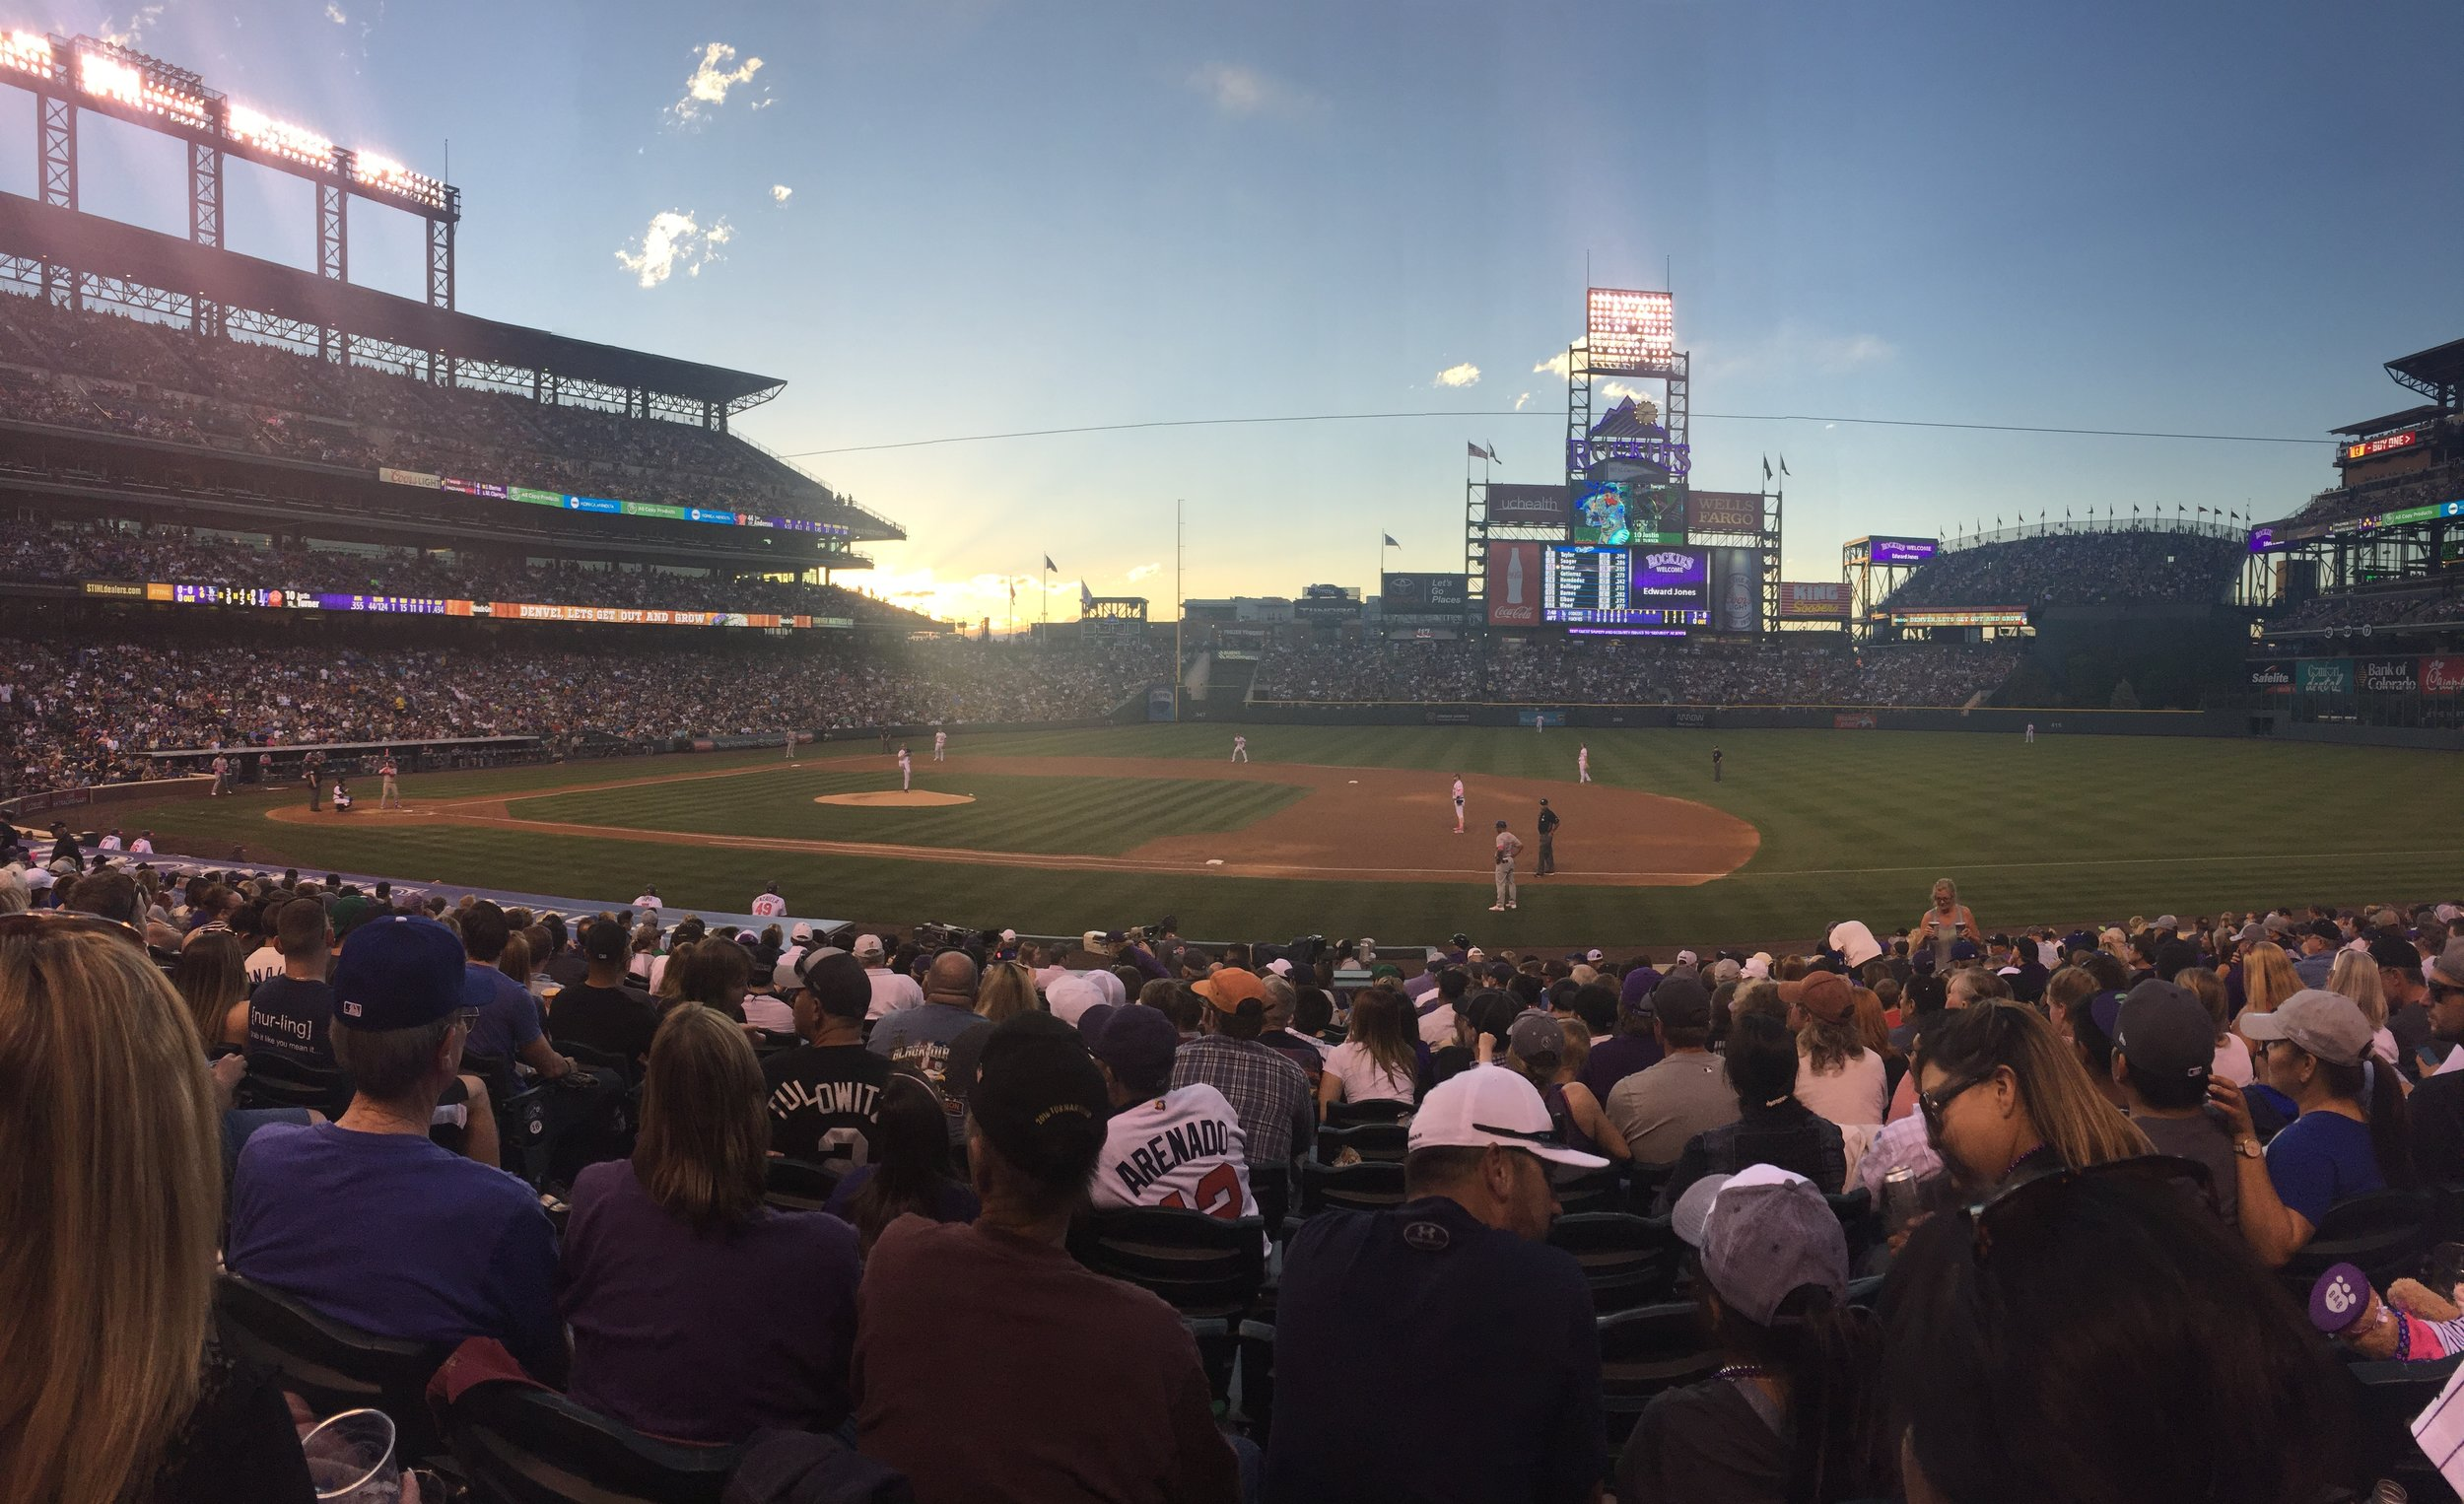 The Rockies vs. The Dodgers at Coors Field